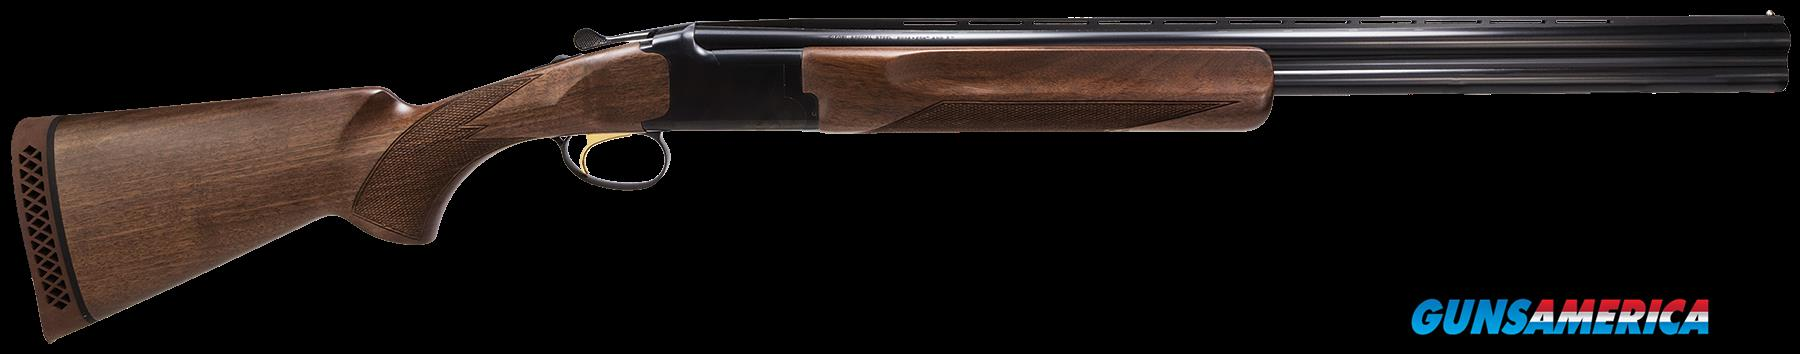 "Browning 013497306 Citori Micro Midas Over/Under 12 Gauge 24"" 3"" Walnut Stk Blued Rcvr  Guns > Shotguns > B Misc Shotguns"